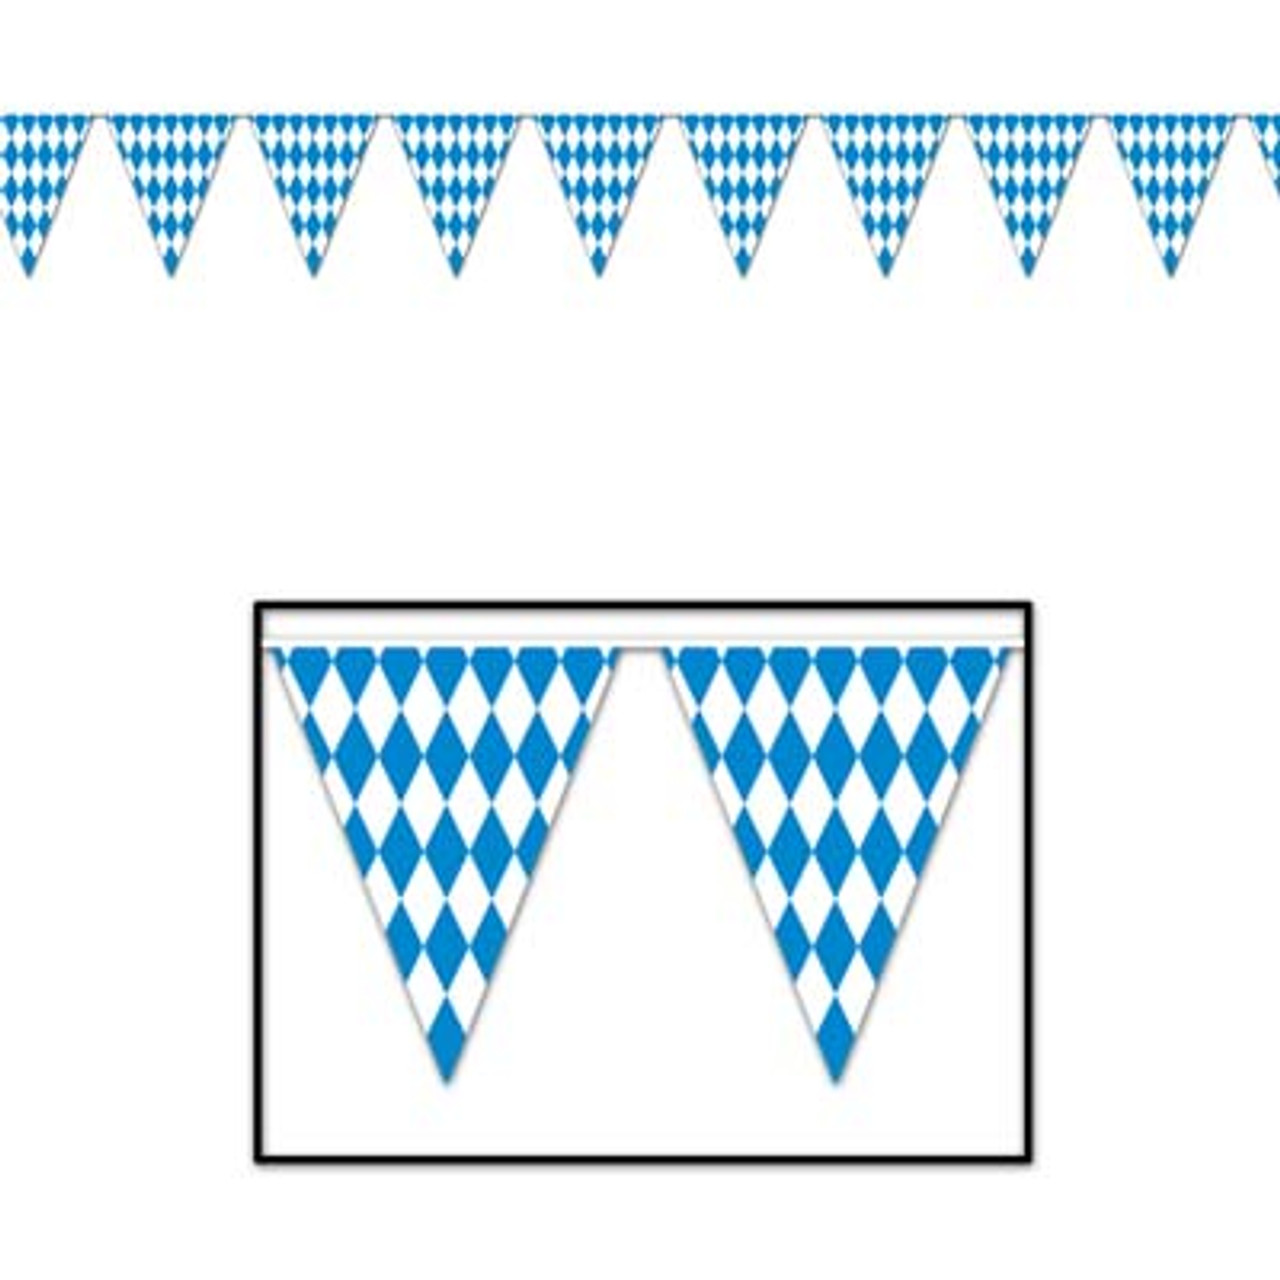 Oktoberfest Party Pennant Banner Small